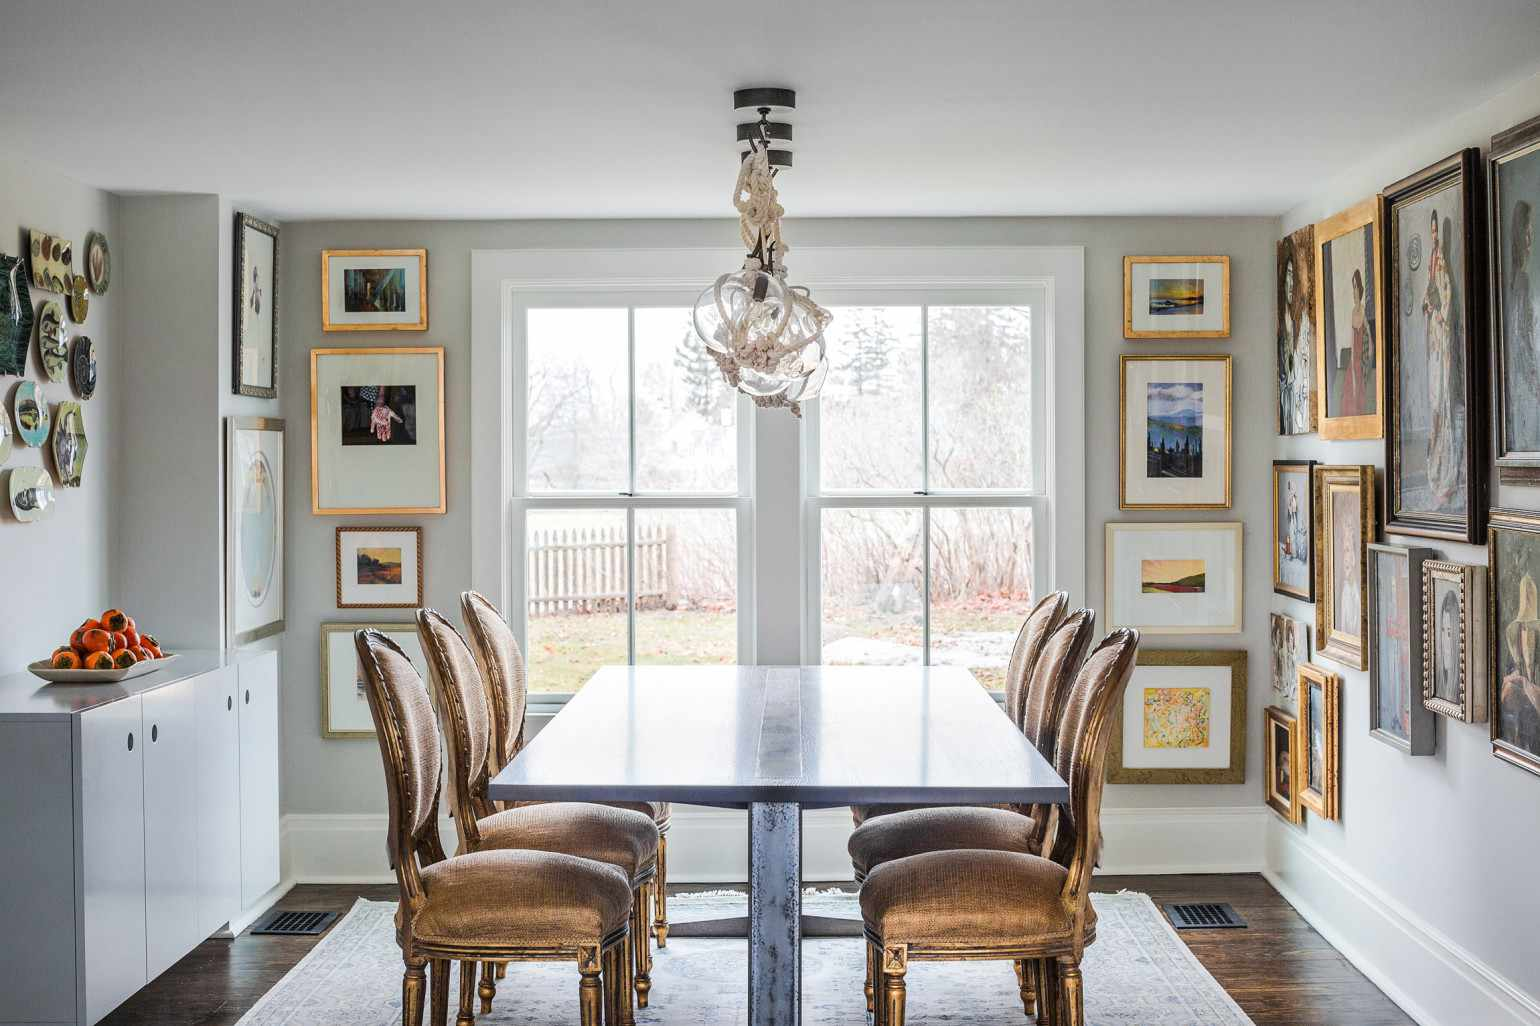 A dining room with a crafty centerpiece, made from globe lights, white rope, and several metal hooks